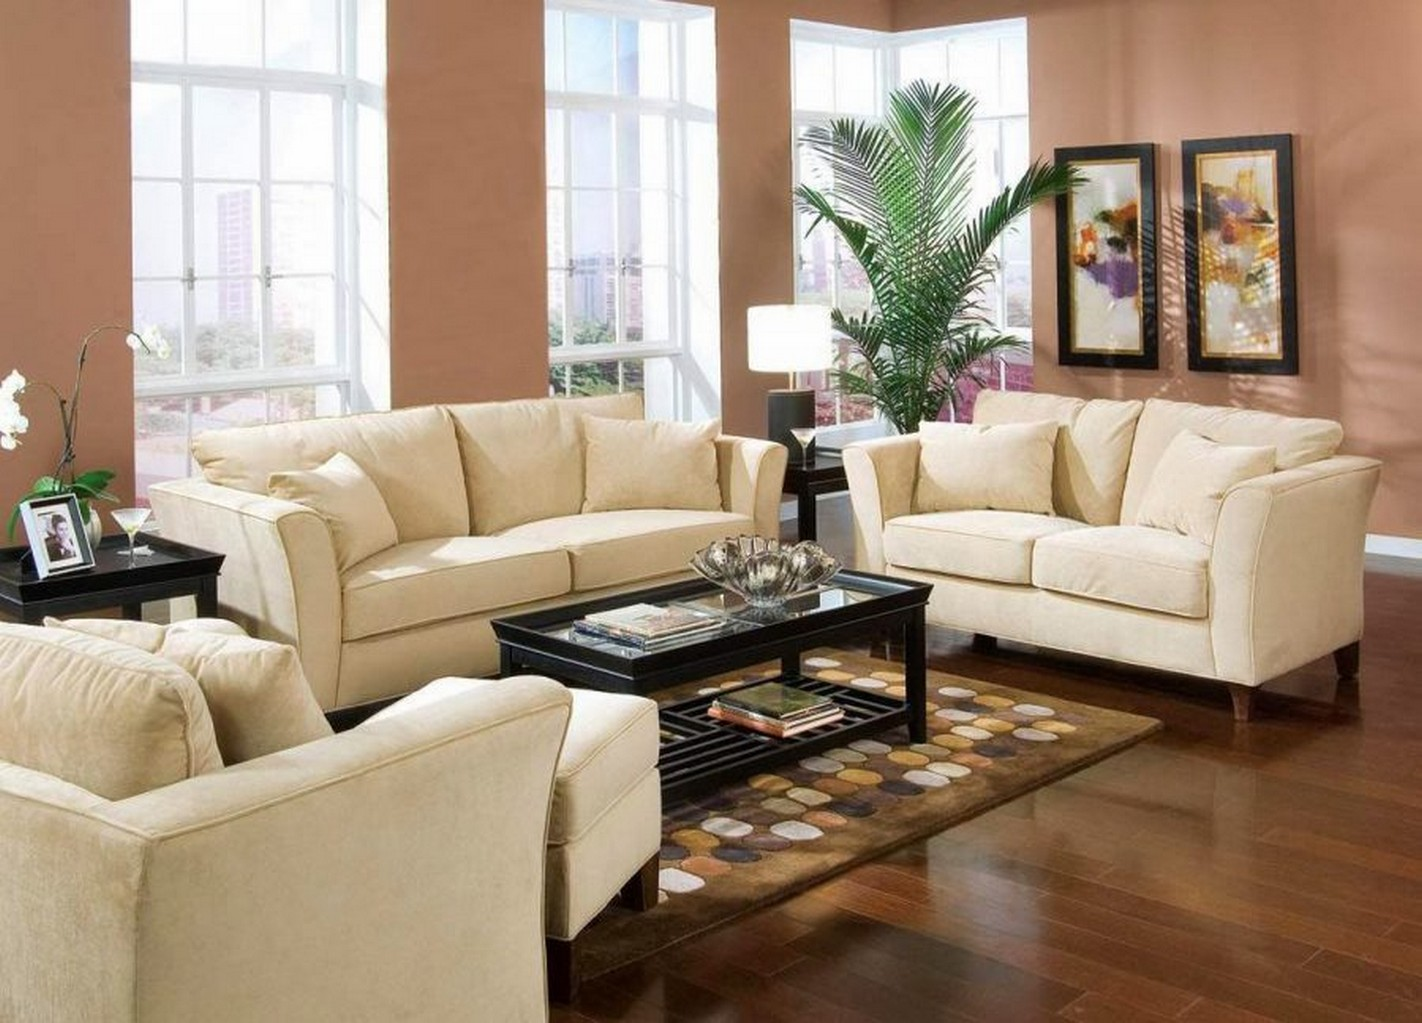 Small living room furniture ideas felish home project for Living room ideas with recliners